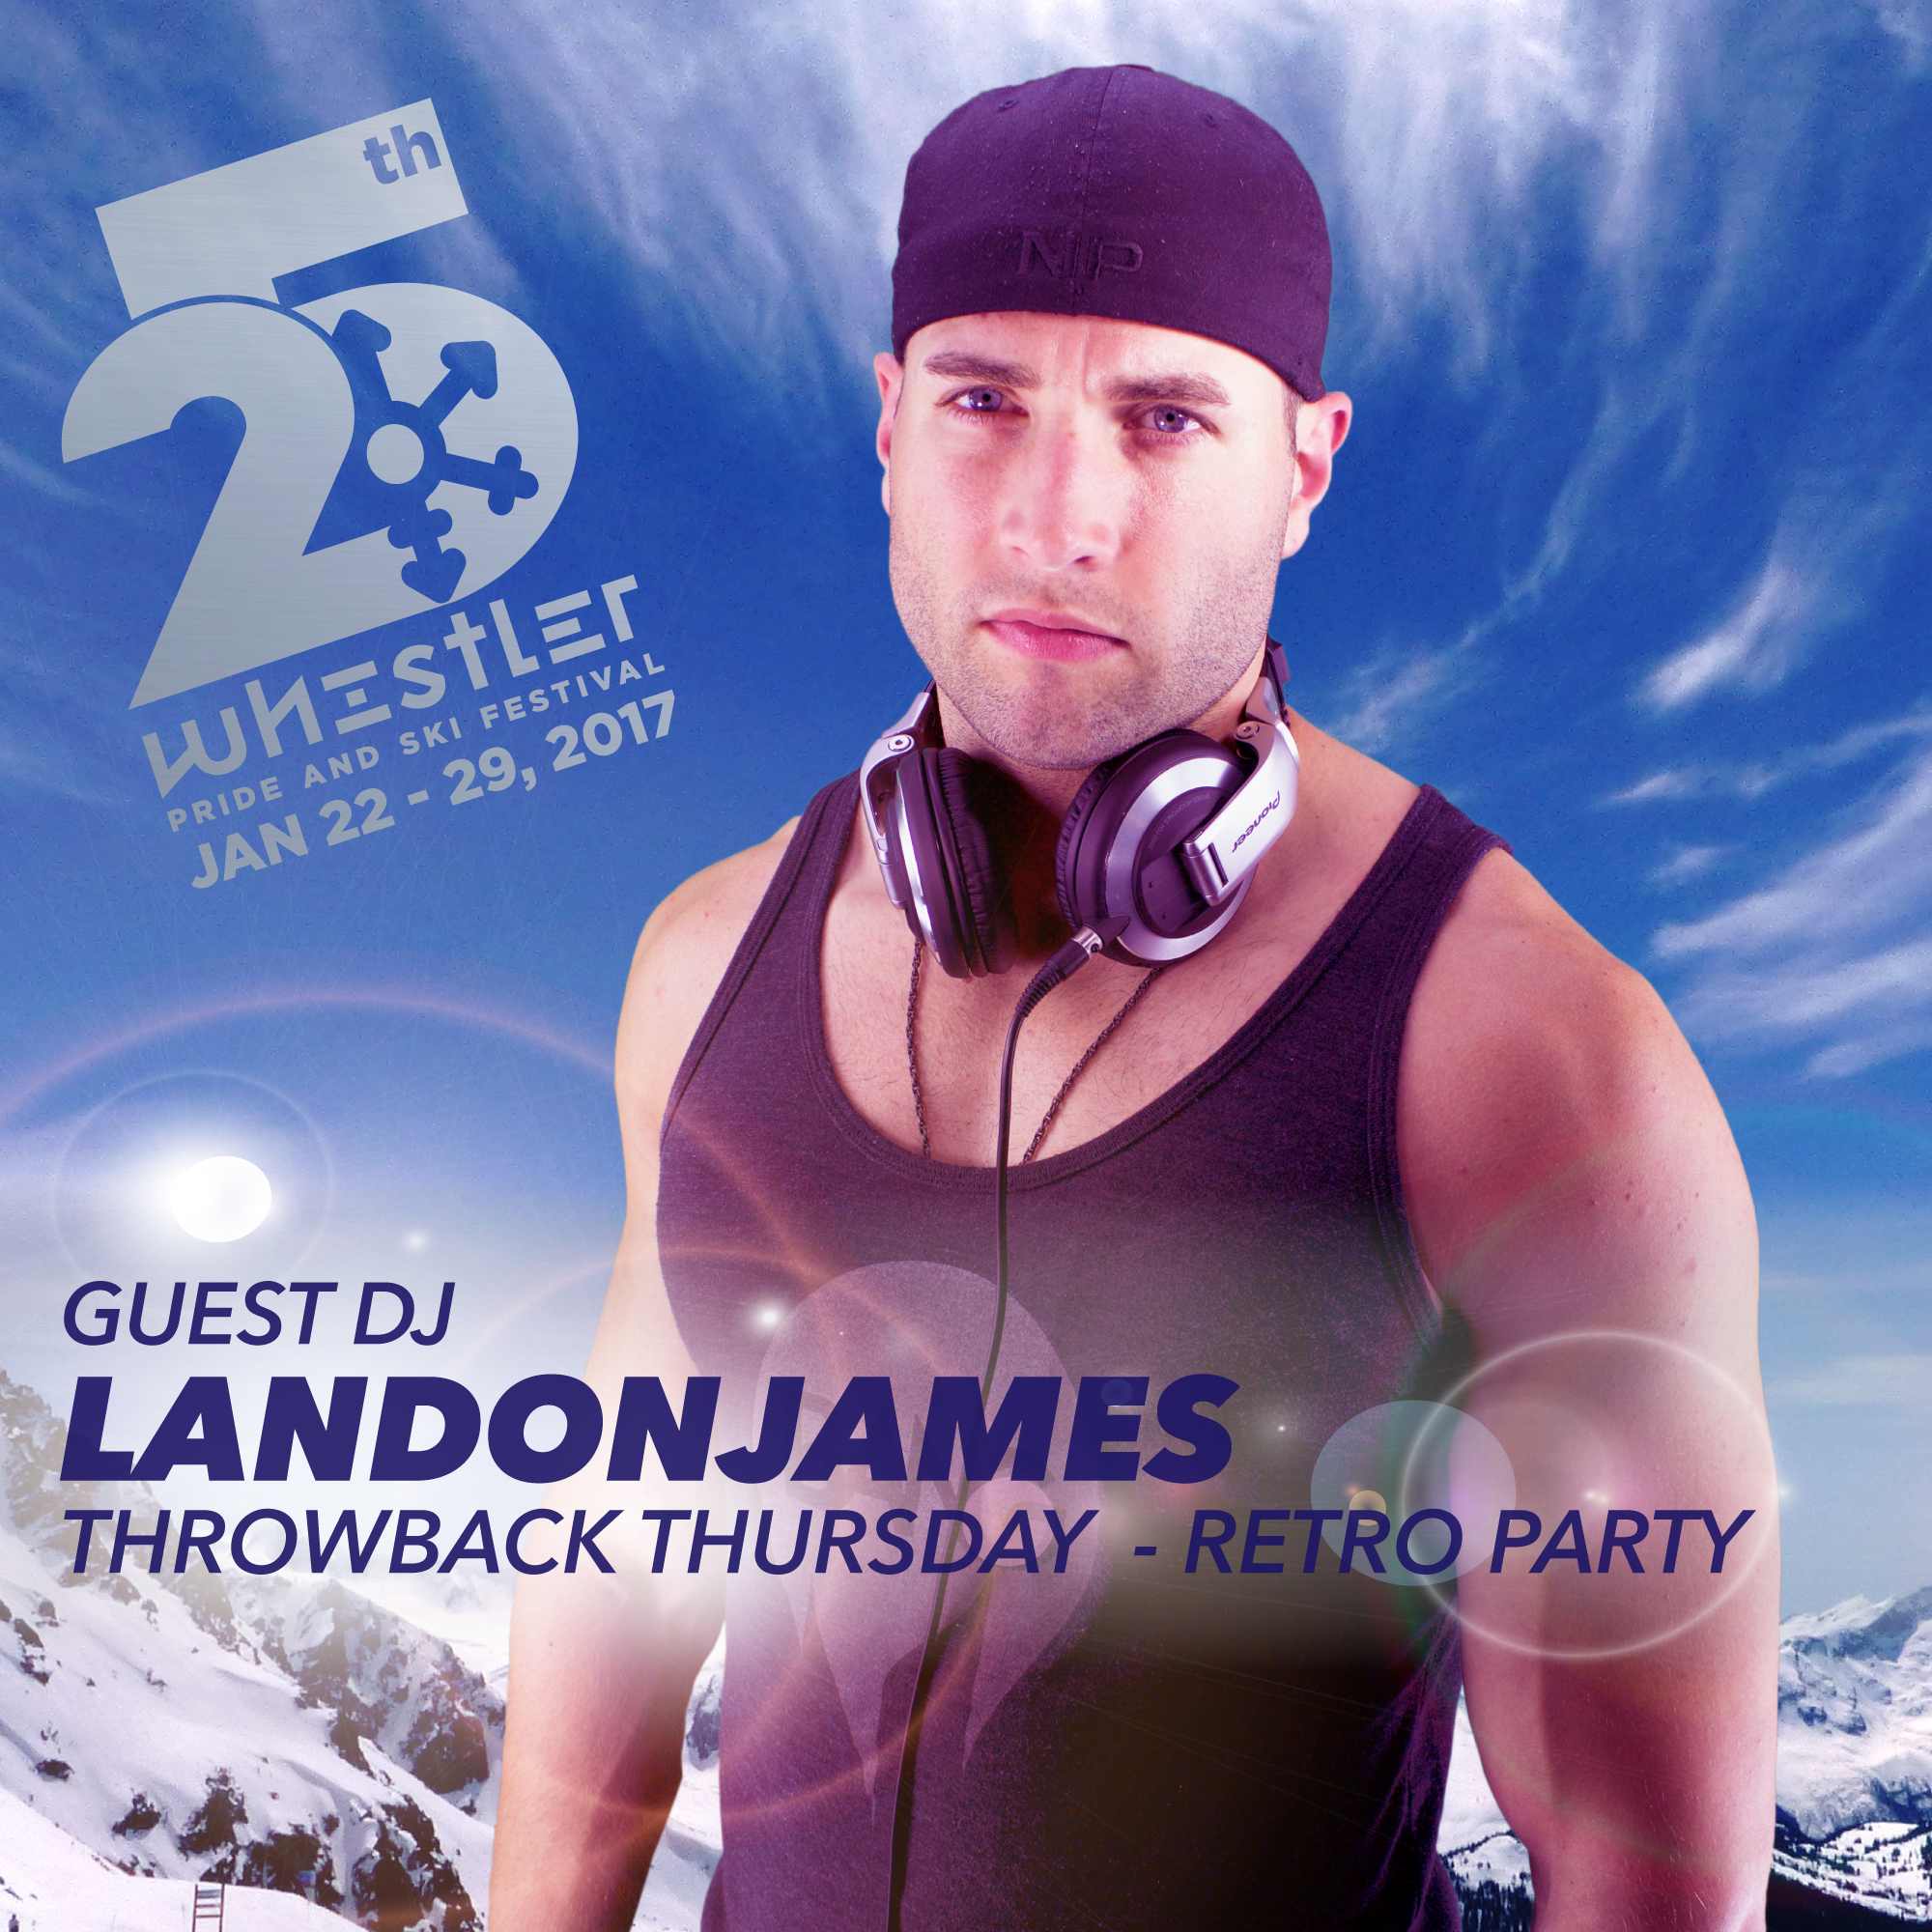 DJ LandonJames at Whistler Pride and Ski Festival